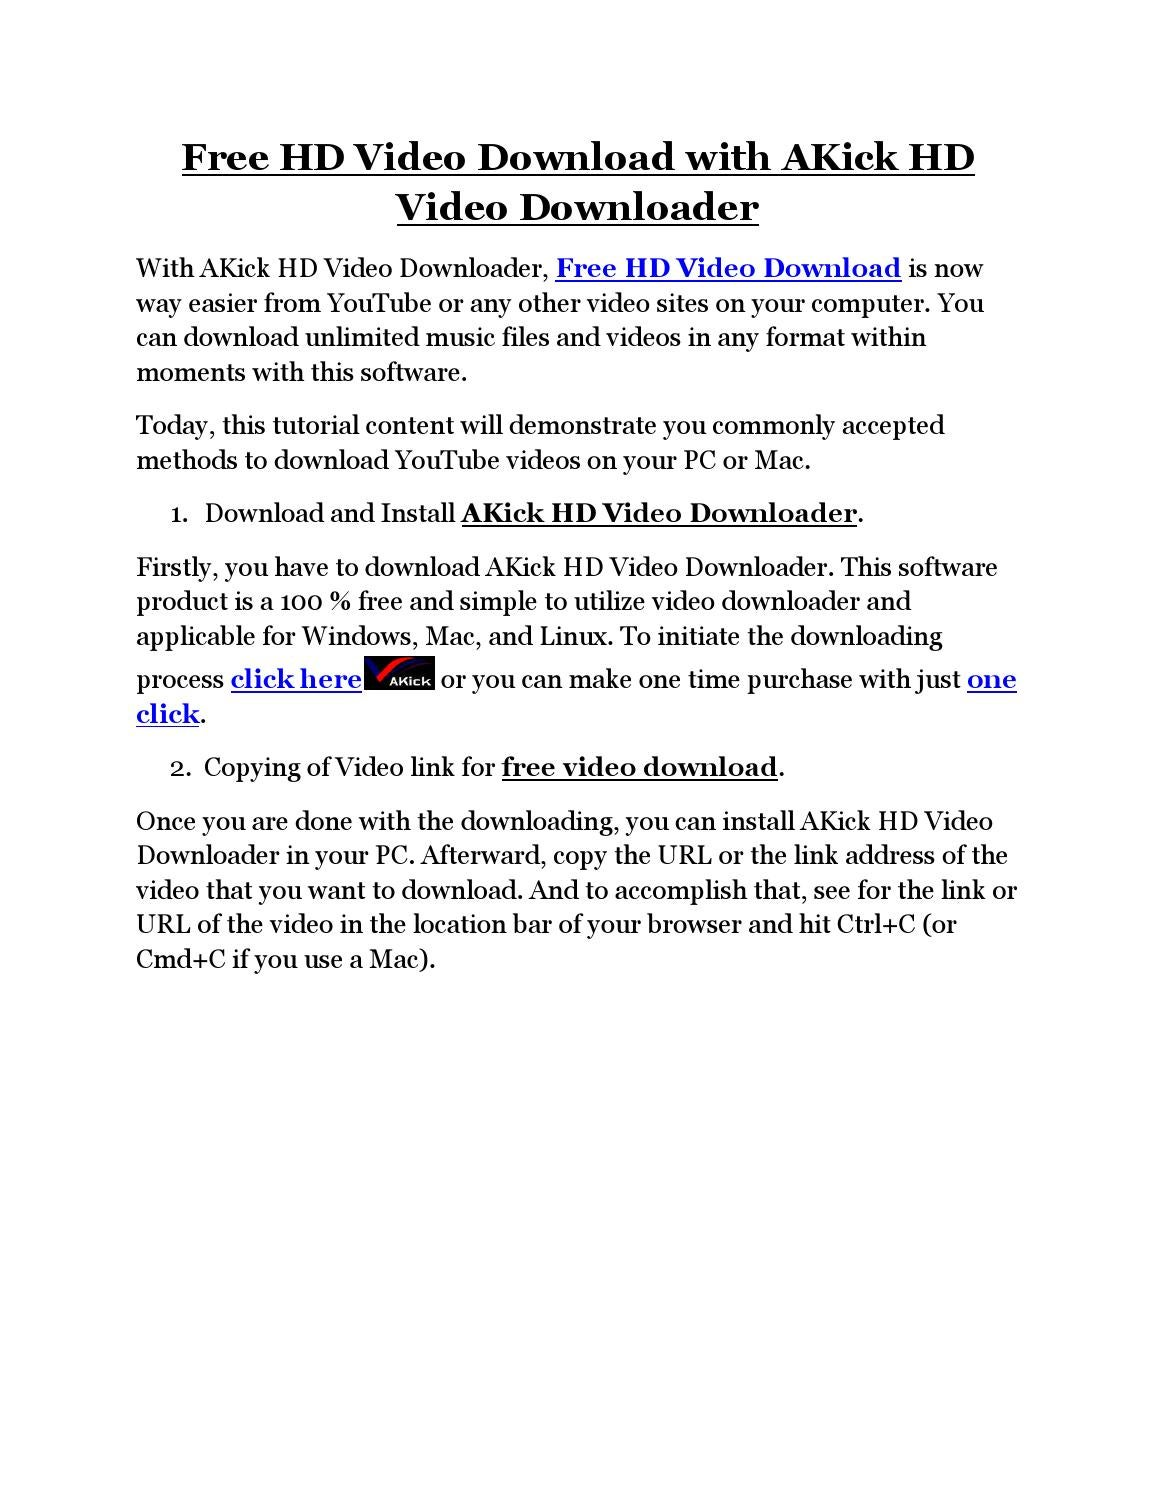 Free Hd Video Download With Akick Hd Video Downloader By Akick Software   Issuu